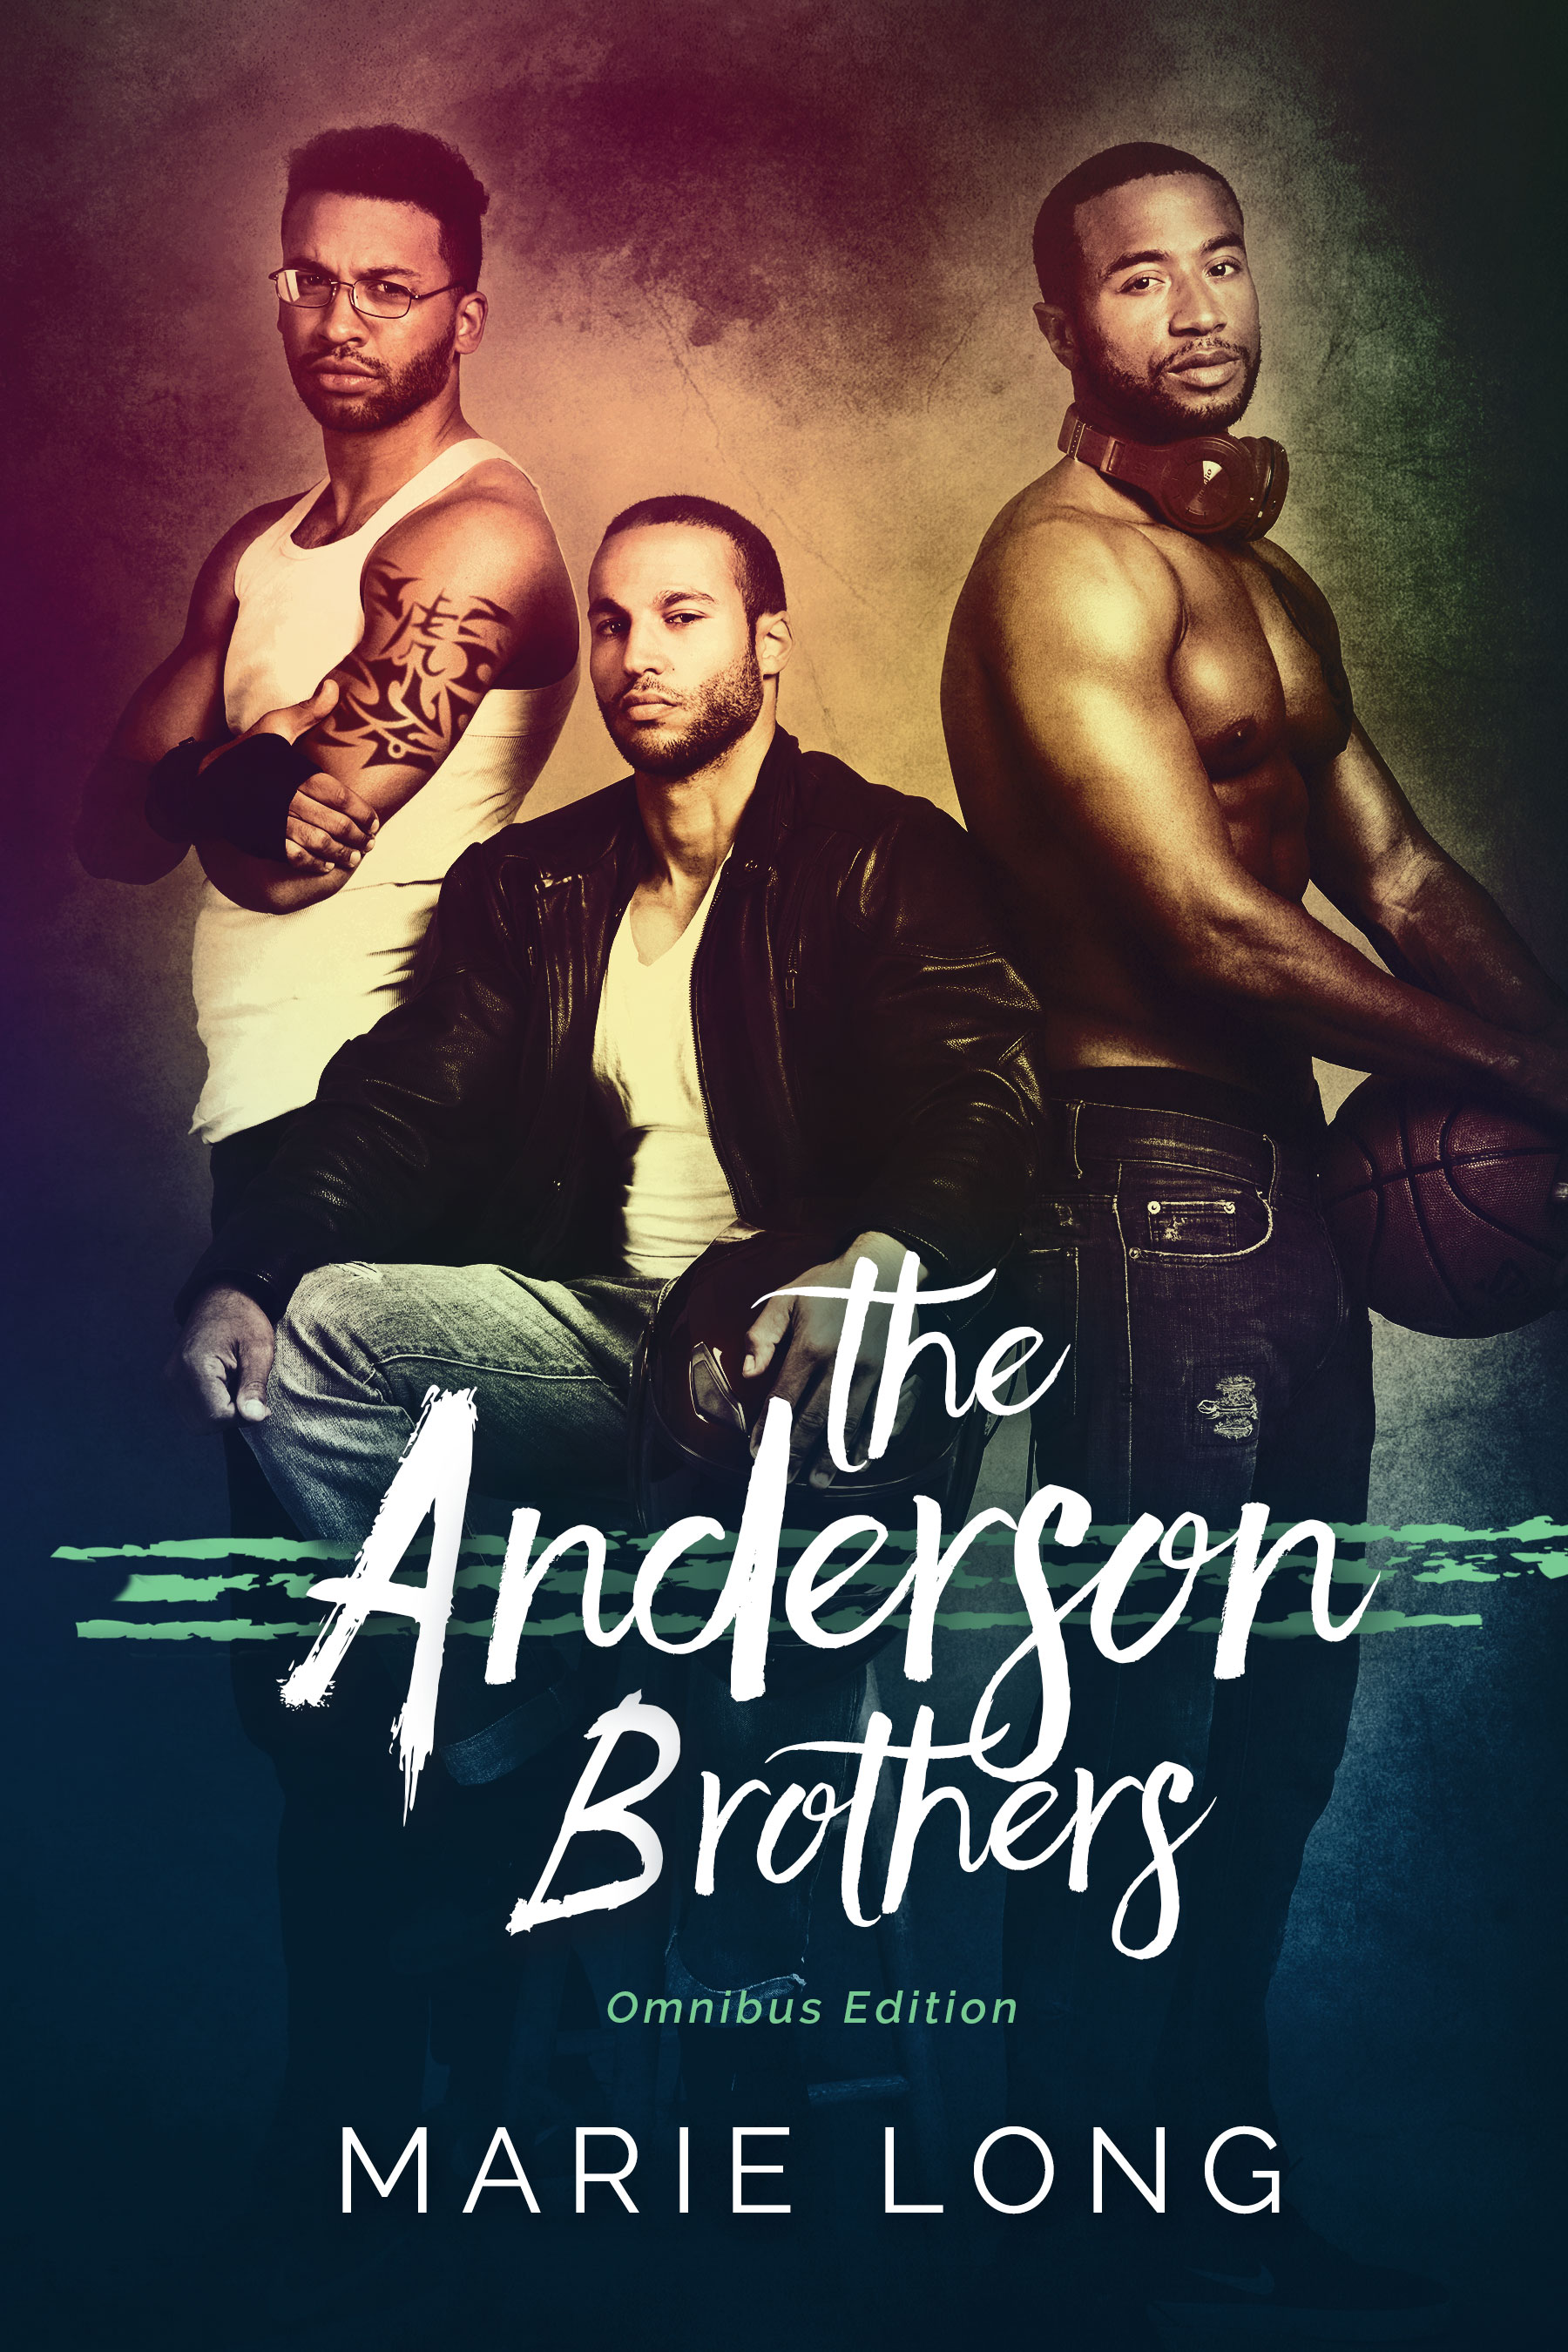 The Anderson Brothers bookcover